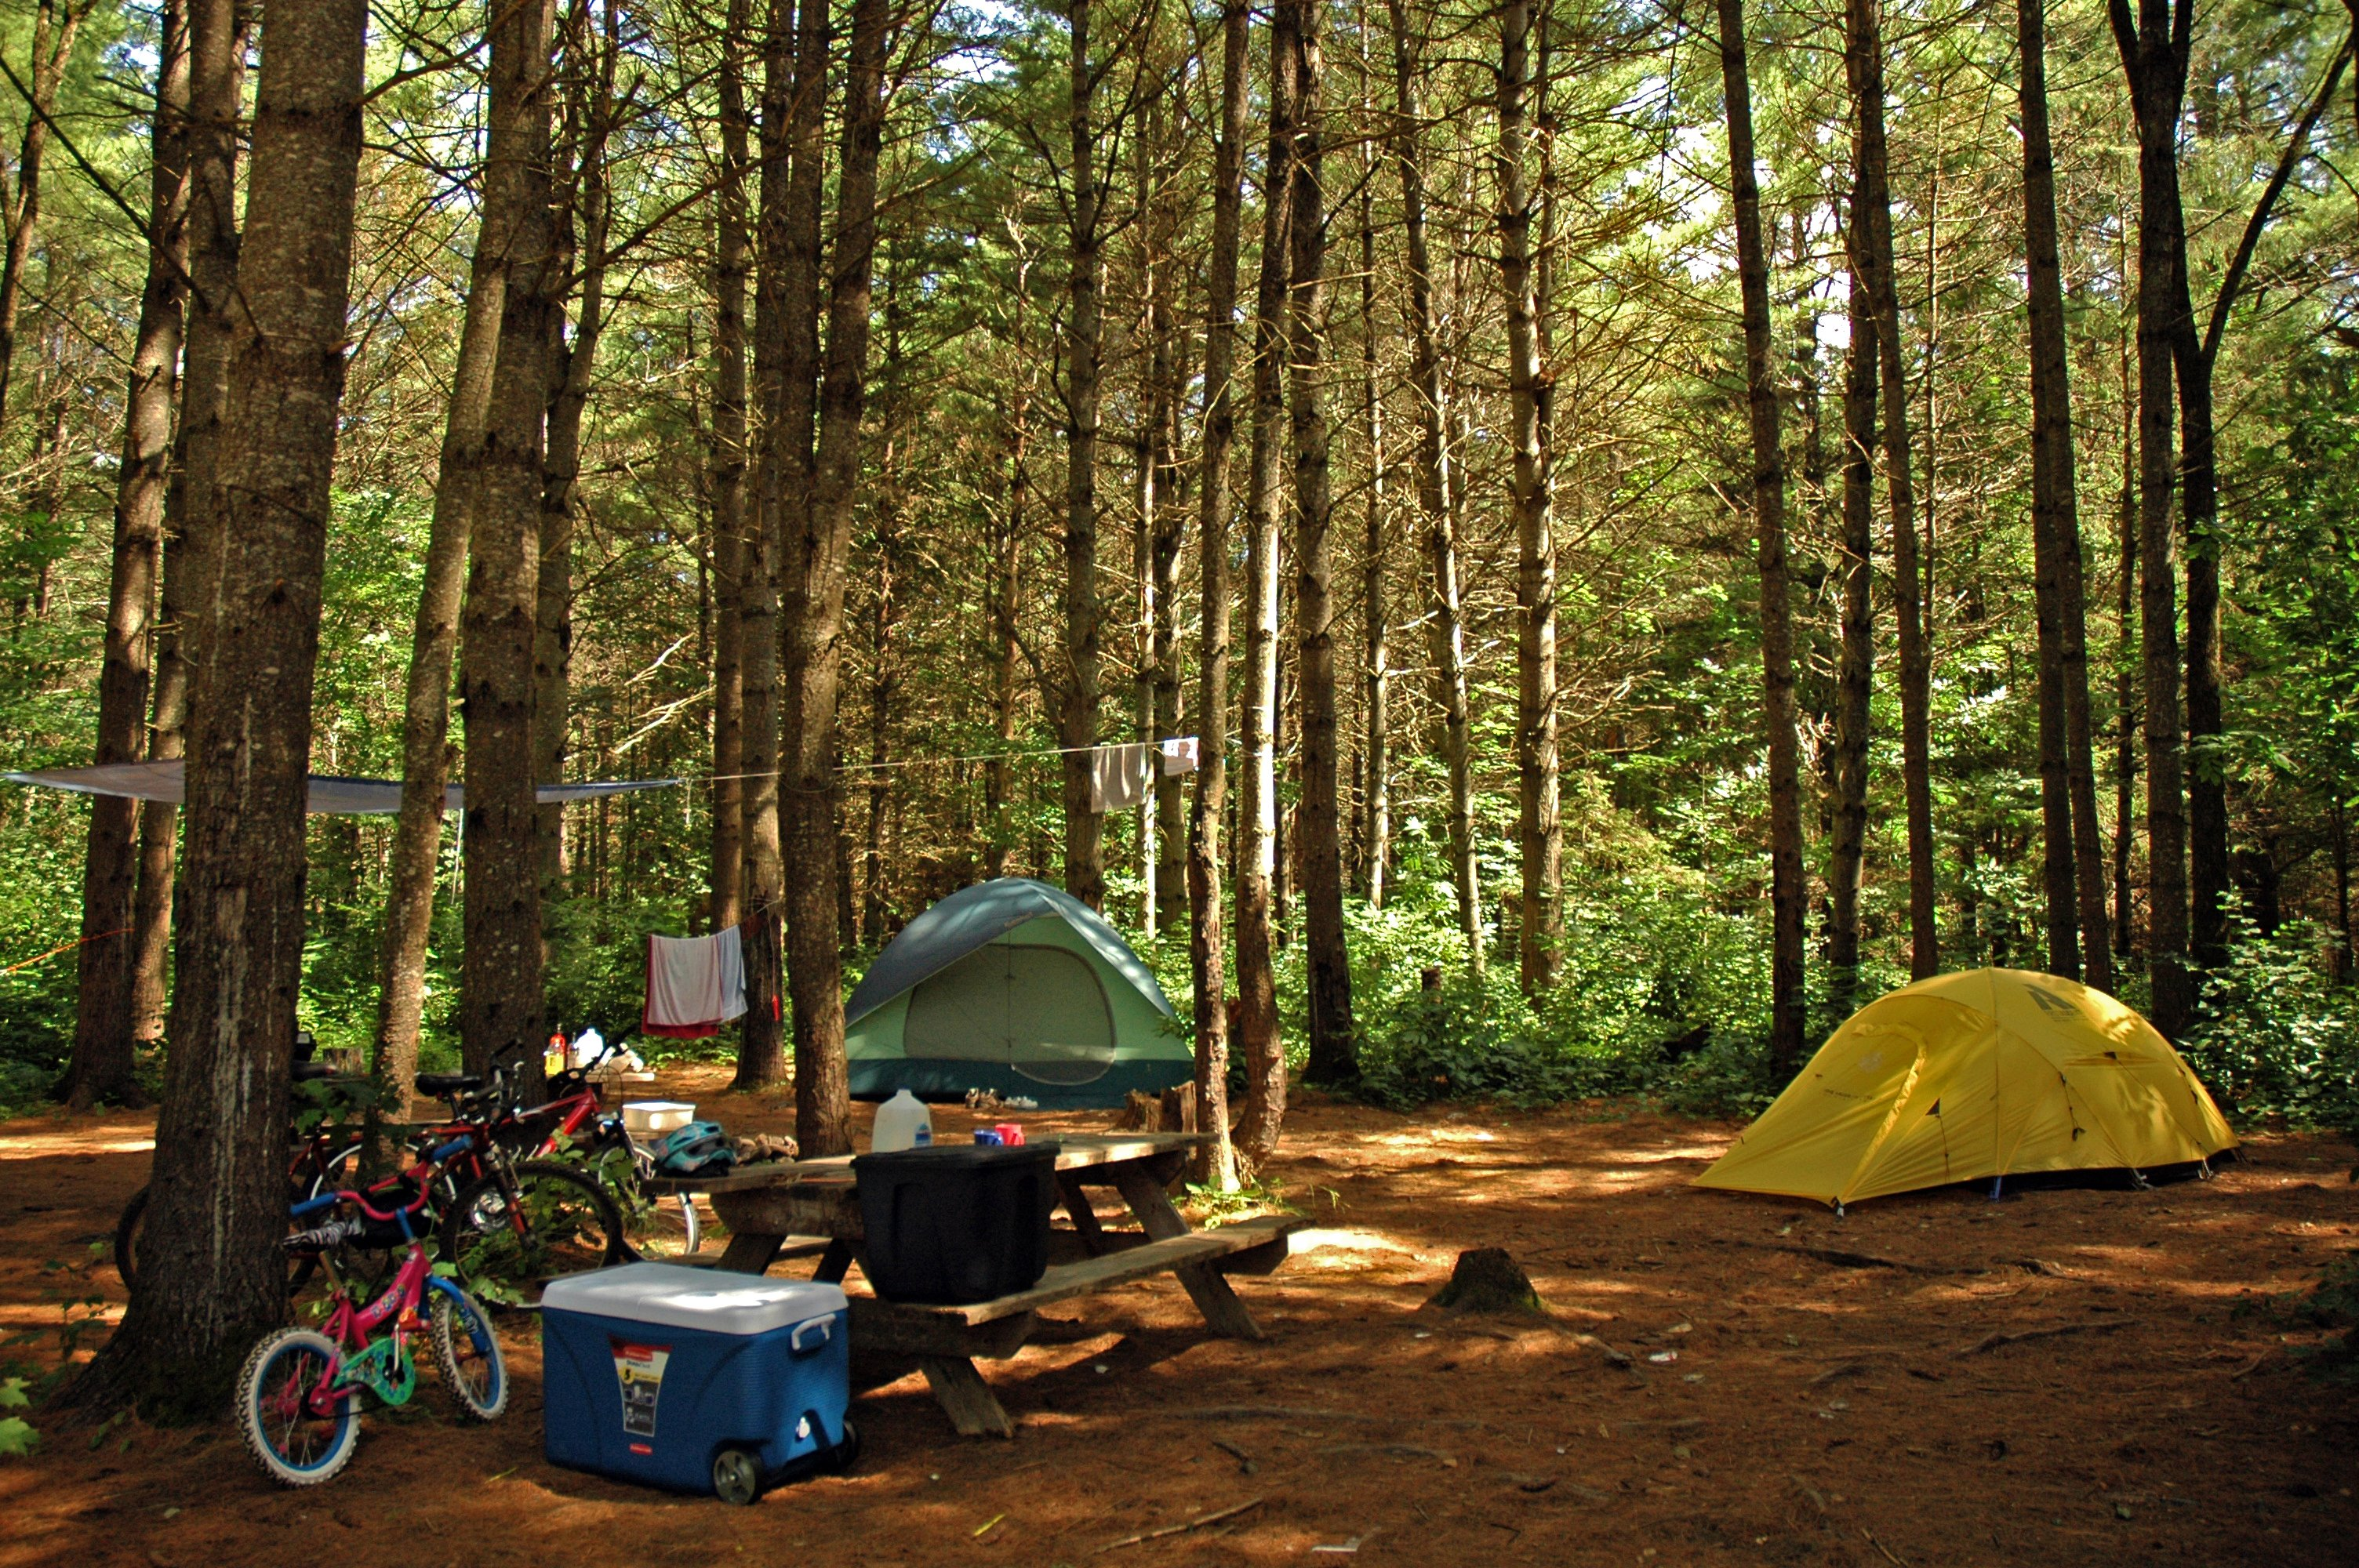 Tent campsites at the Kennebec River Campground, at Northern Outdors